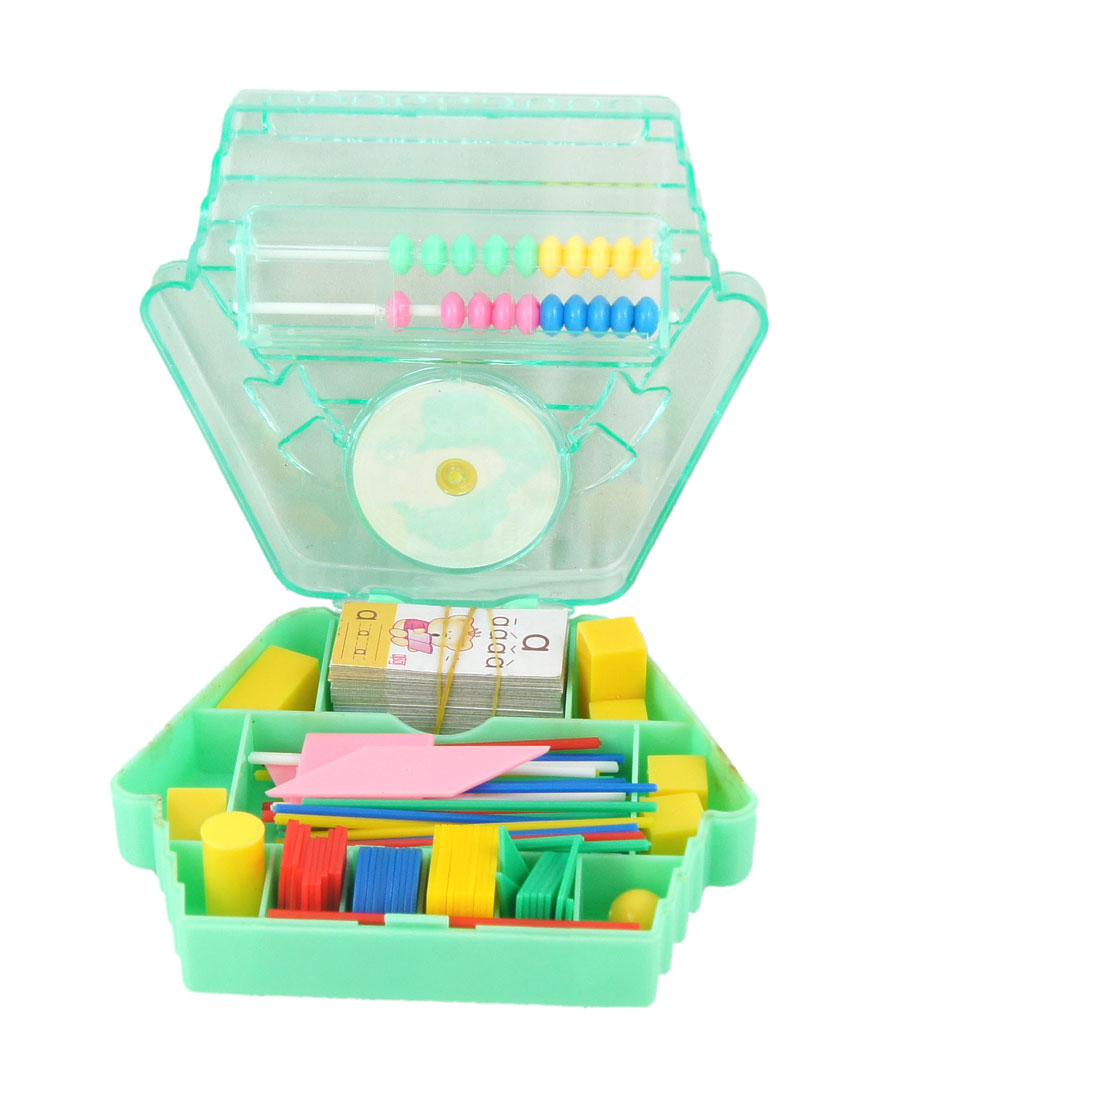 Watch Accent Green House Design Abacus Jigsaw Puzzle Toy for Child